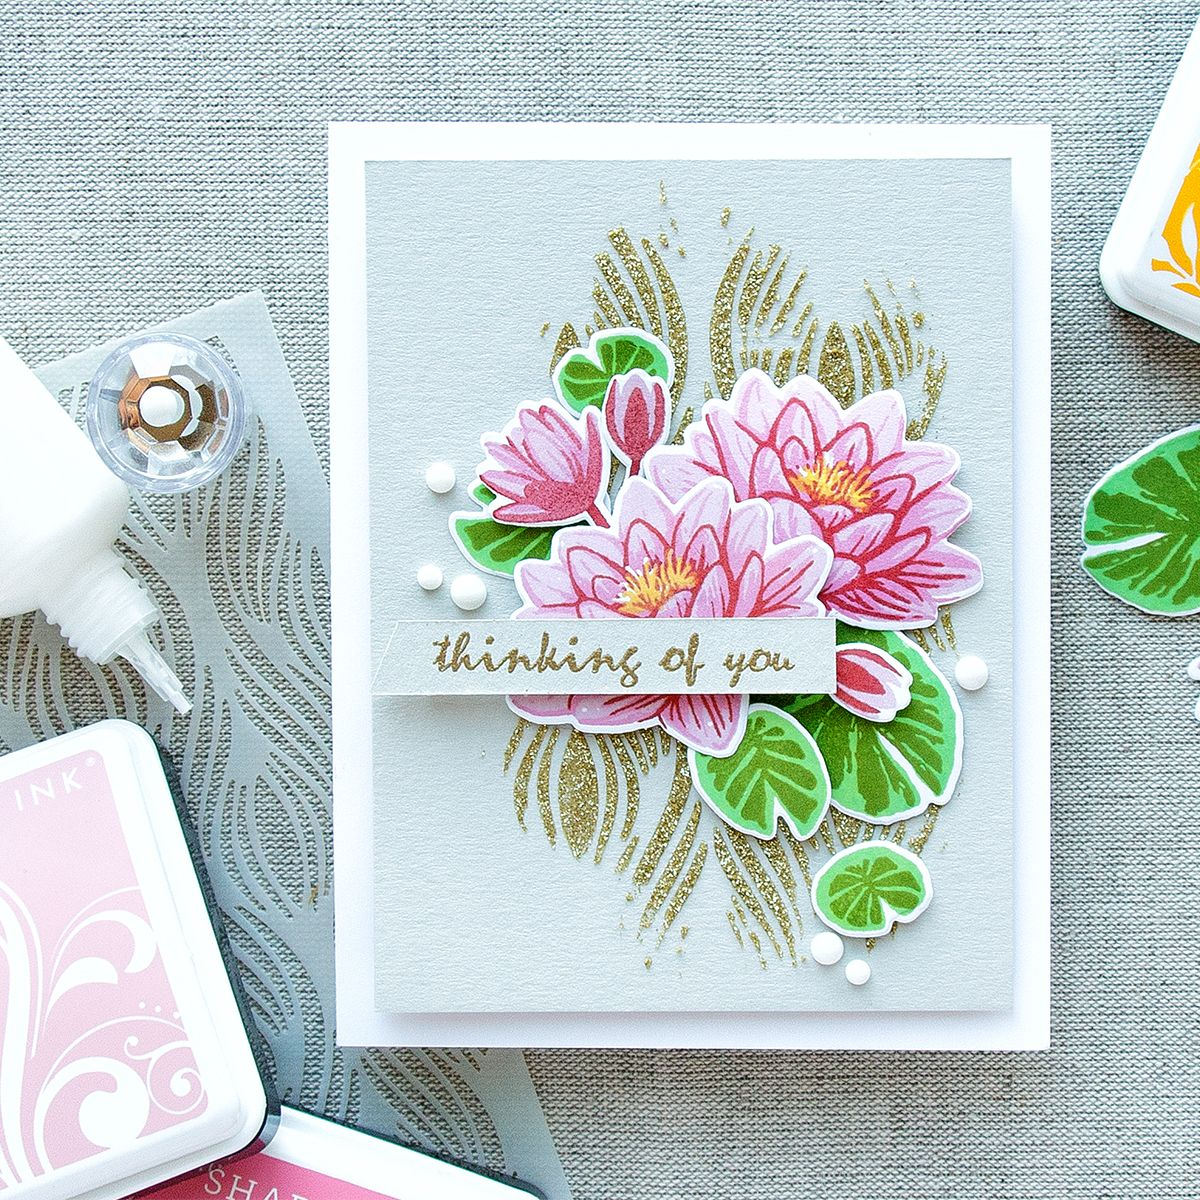 Hero Arts | Color Layering Water Lilies - Thinking of You Card